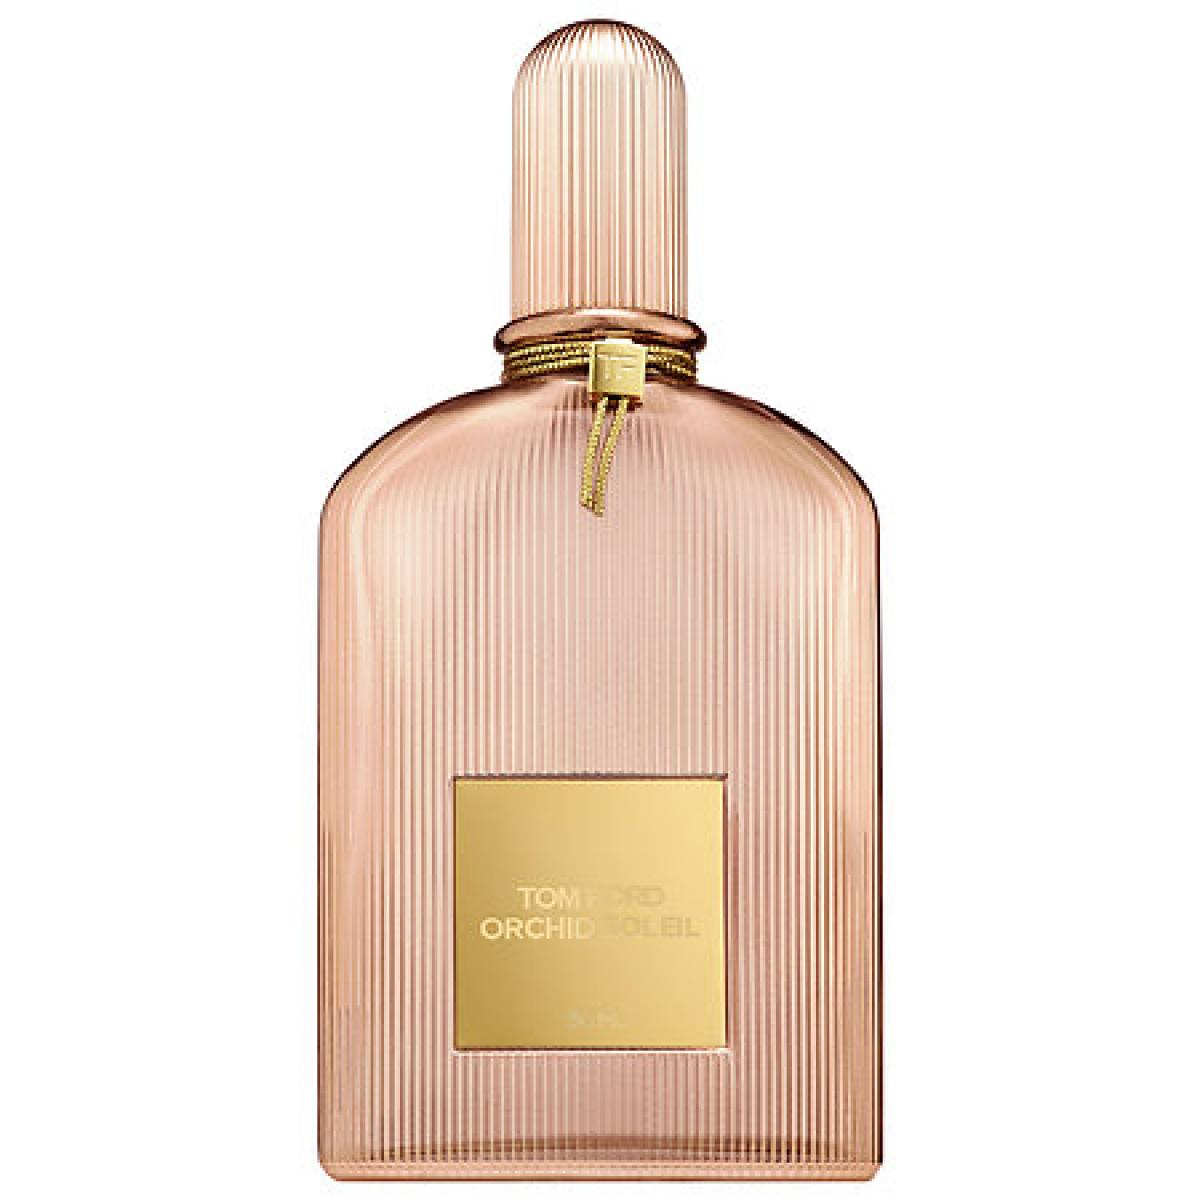 Парфюми Tom Ford Orchid Soleil за жени